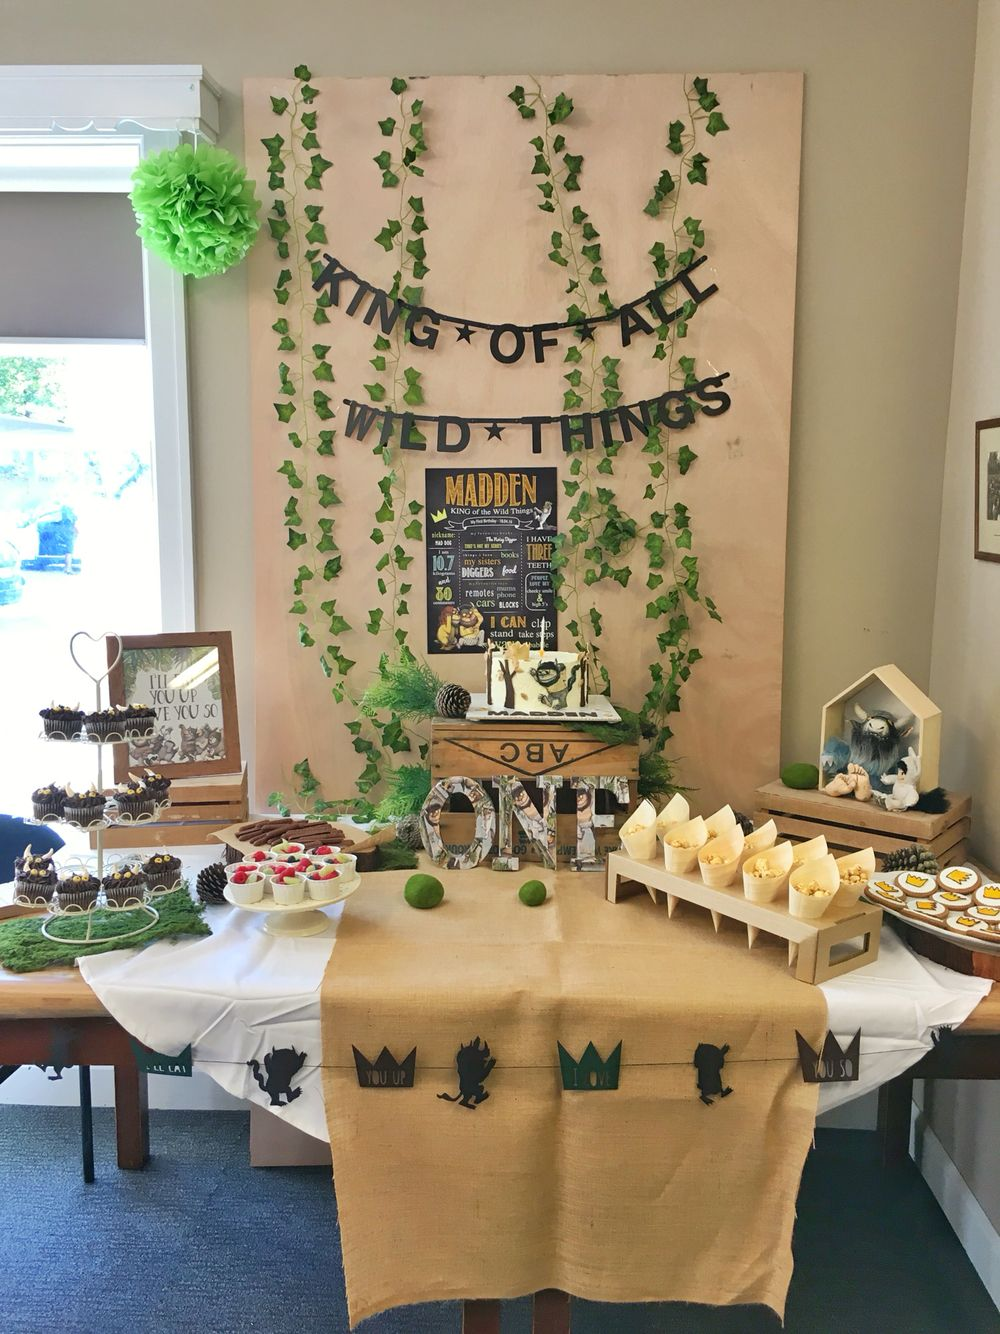 430 Best Wild Things Party Ideas In 2021 Wild Things Party First Birthdays Wild One Birthday Party